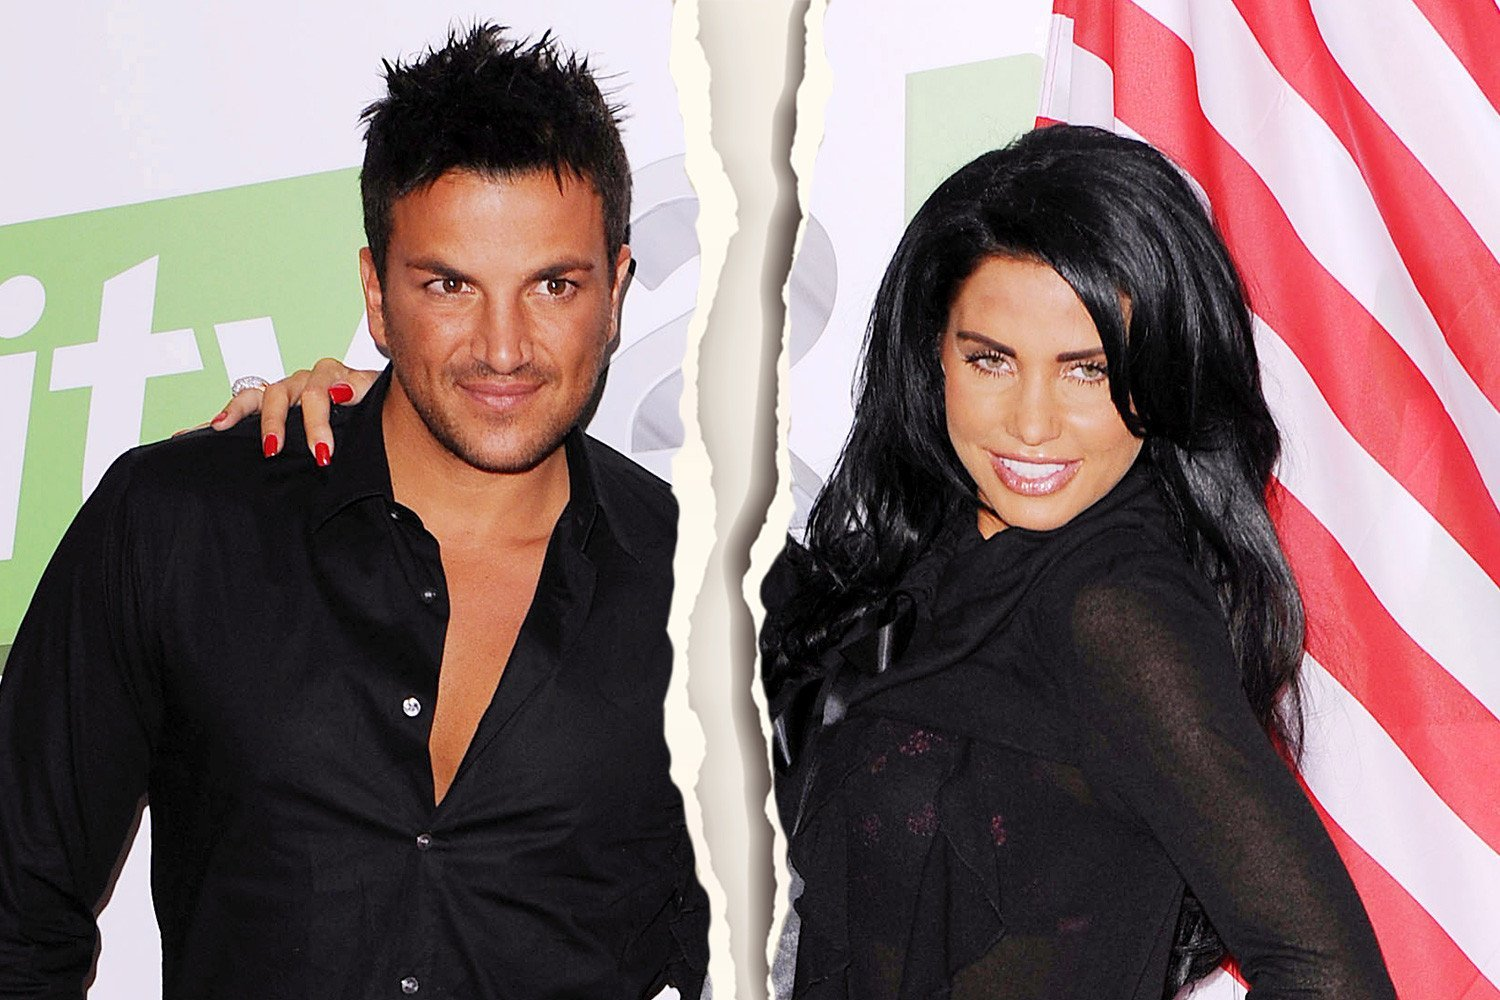 Why did Katie Price and Peter Andre split up, who has custody of their children and do they still talk?